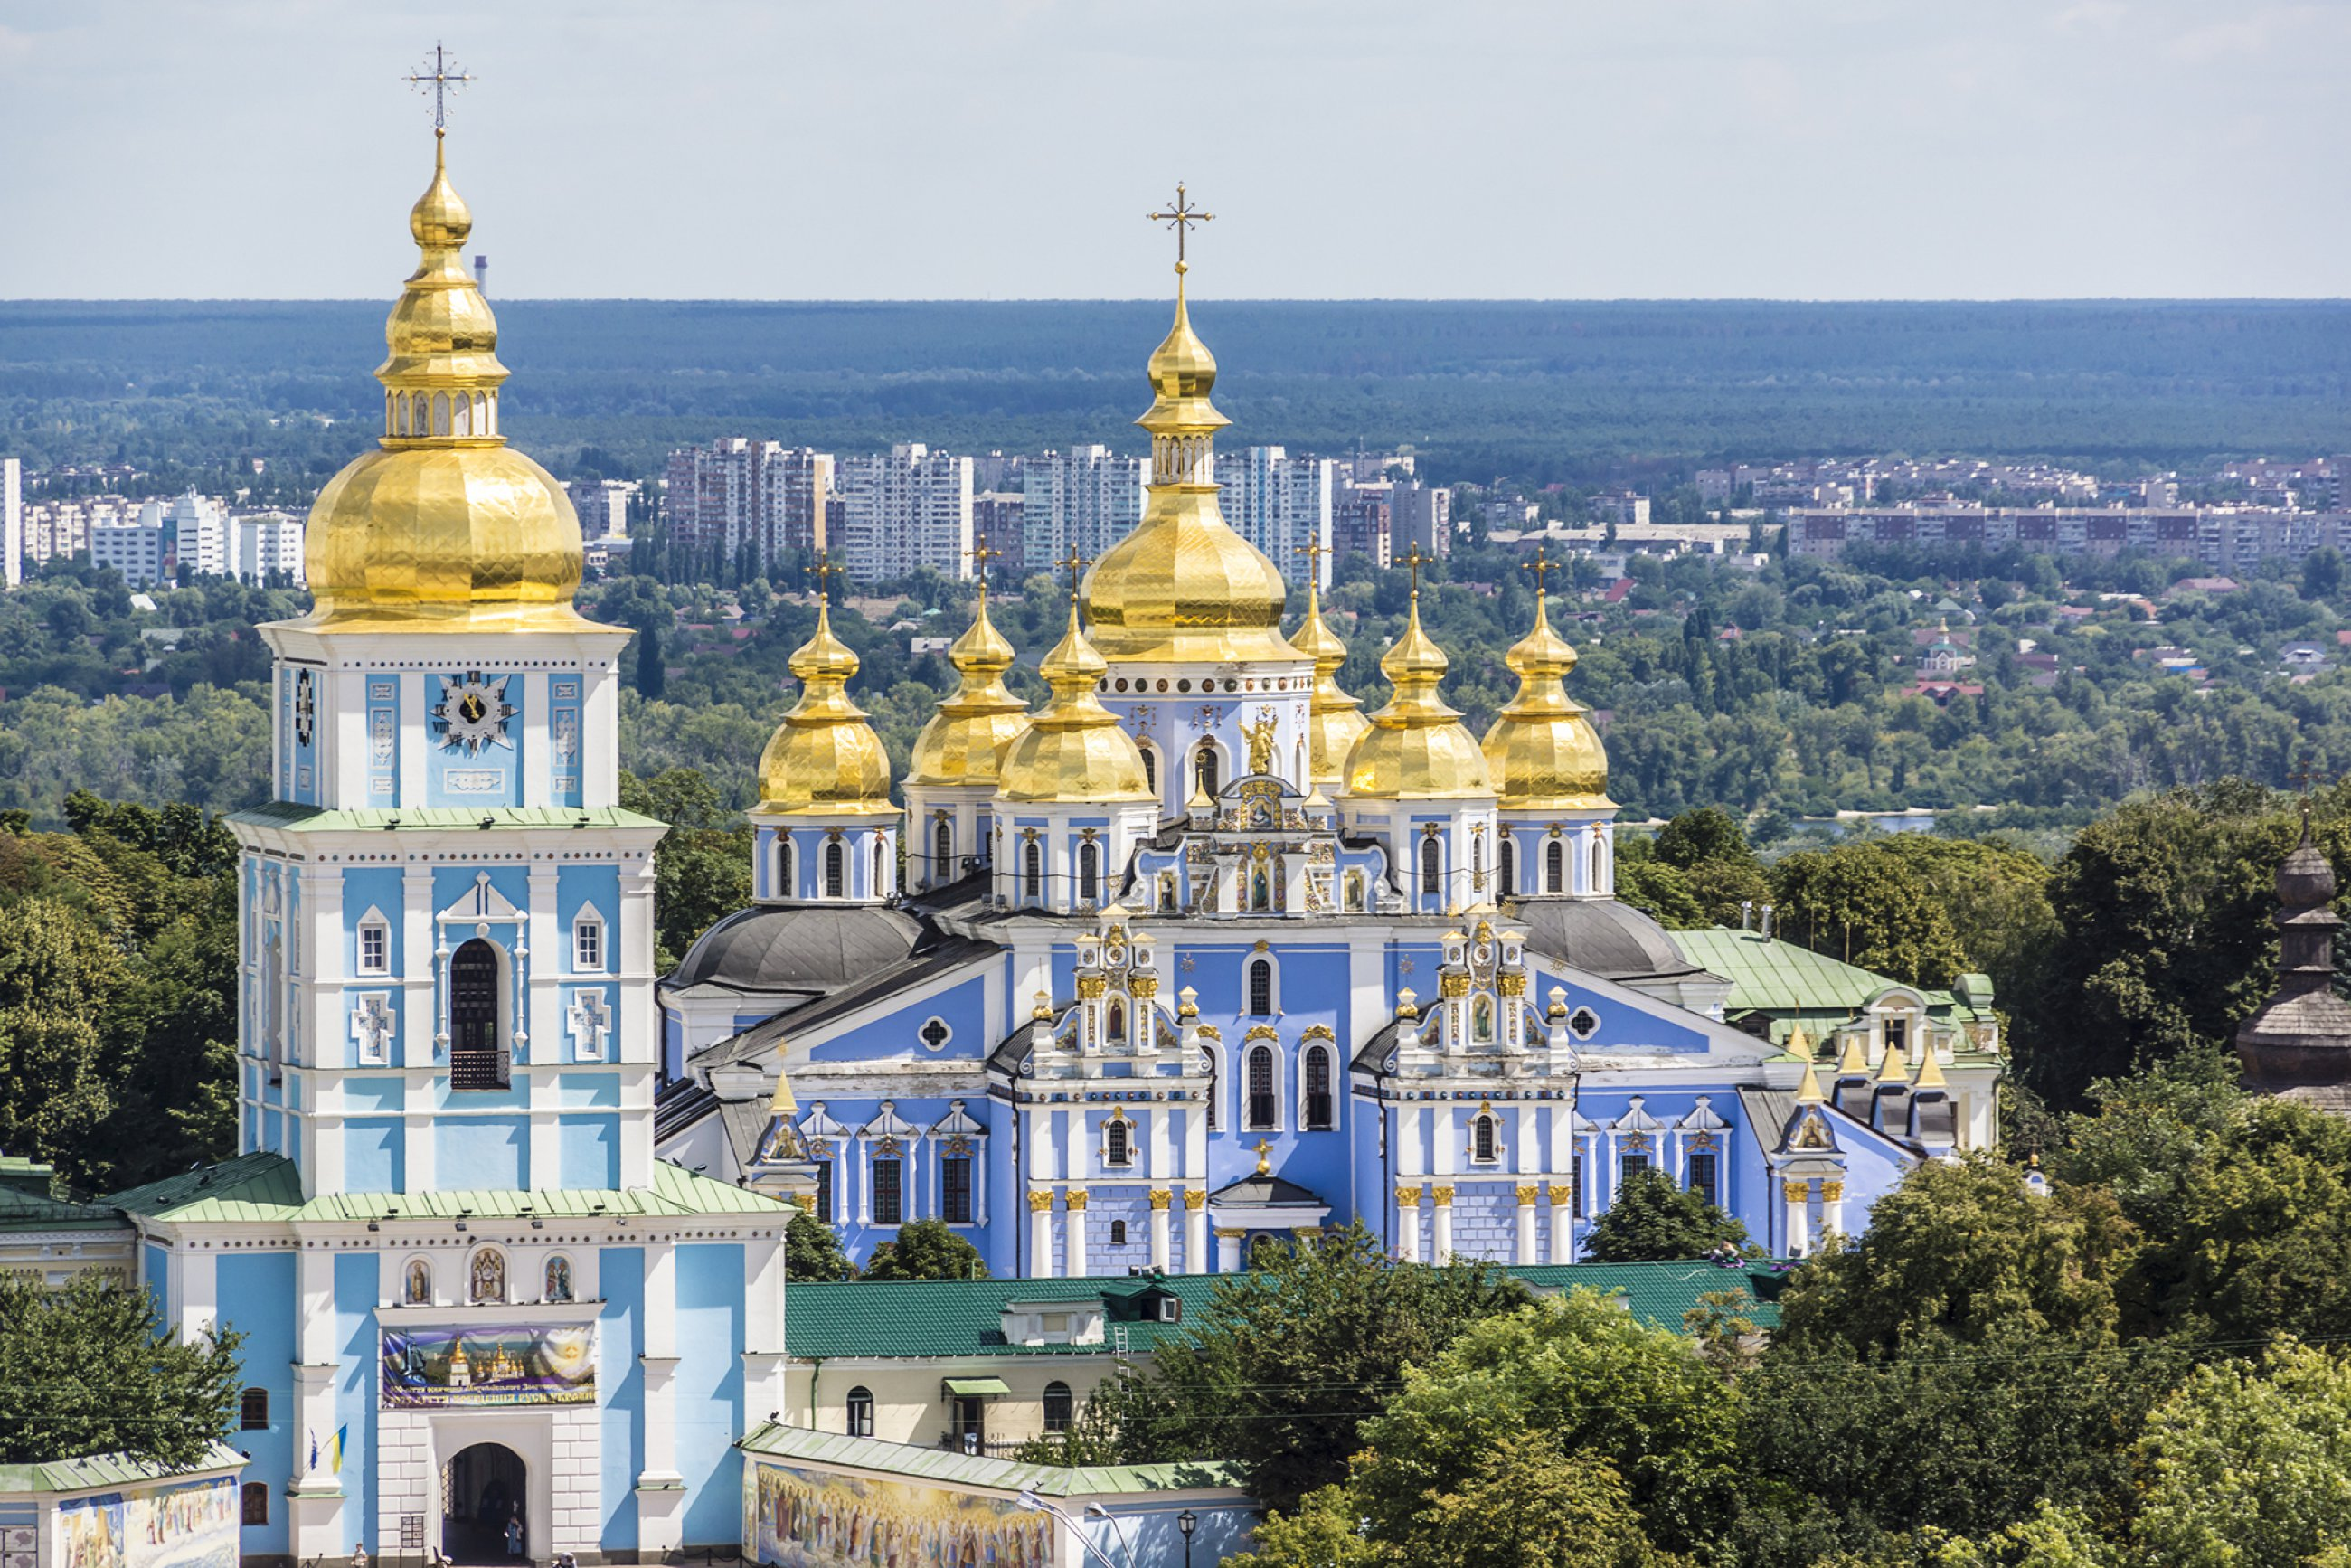 https://bubo.sk/uploads/galleries/5056/ukrajina-saint-michae-s-goldendomed-cathedral-famous-church-complex-in-kyiv.jpg